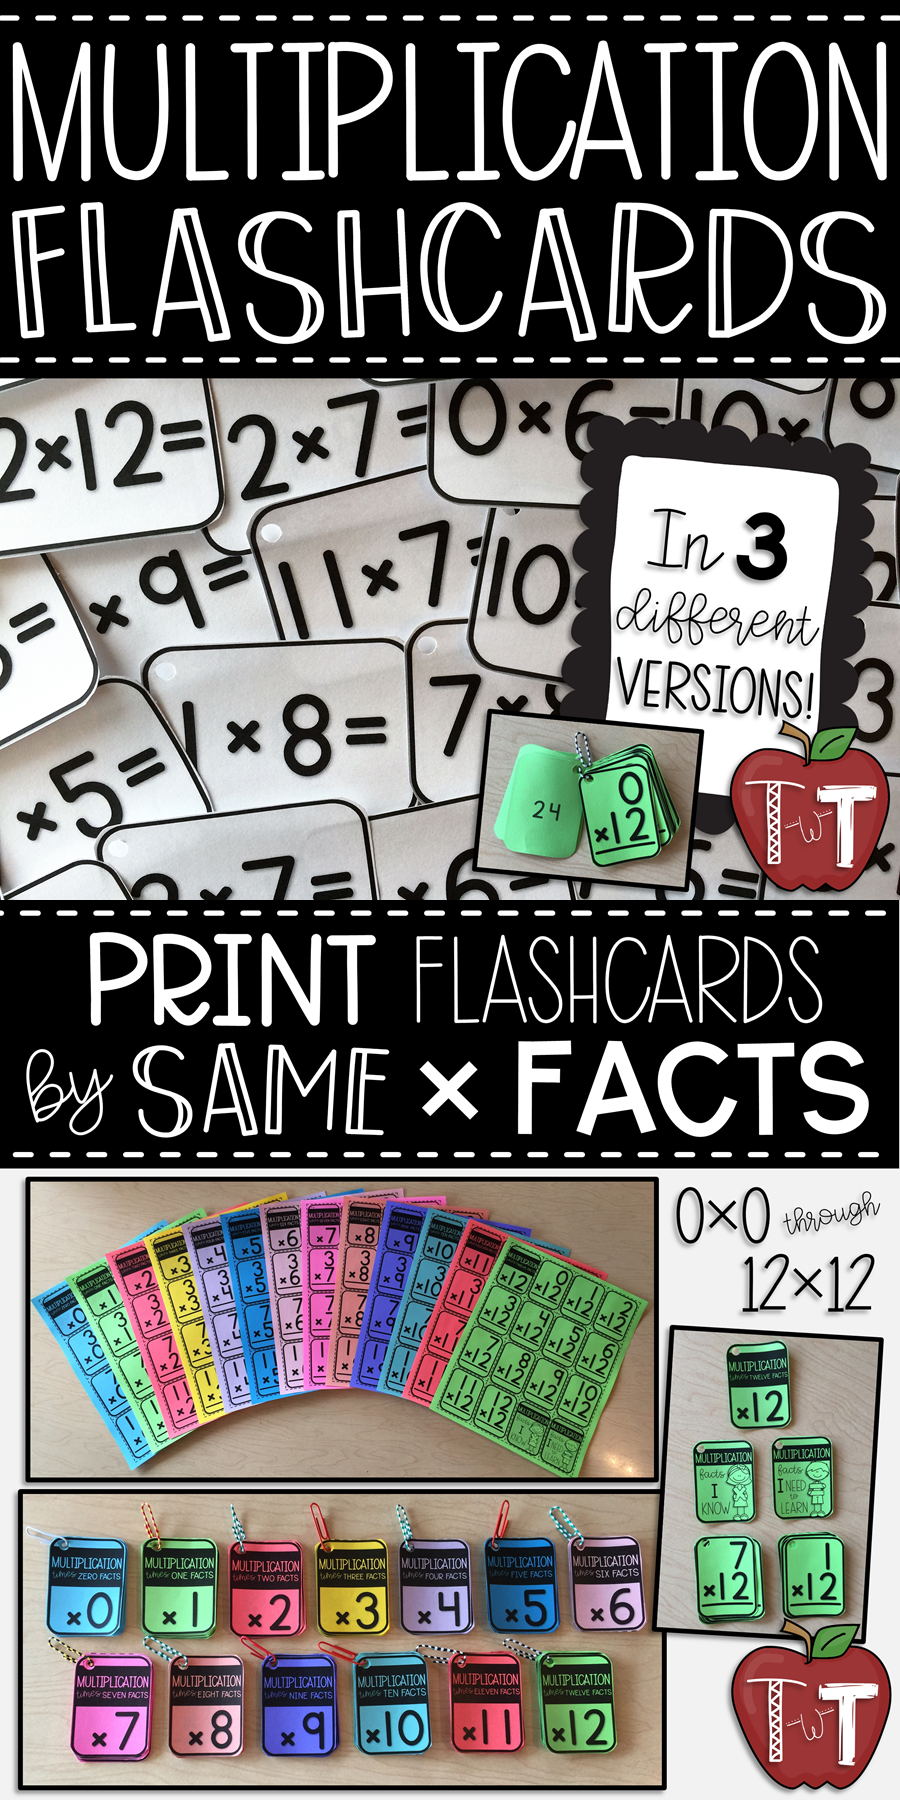 photo regarding Printable Multiplication Flashcards With Answers on Back named Multiplication Flash Playing cards Printable Flashcards with